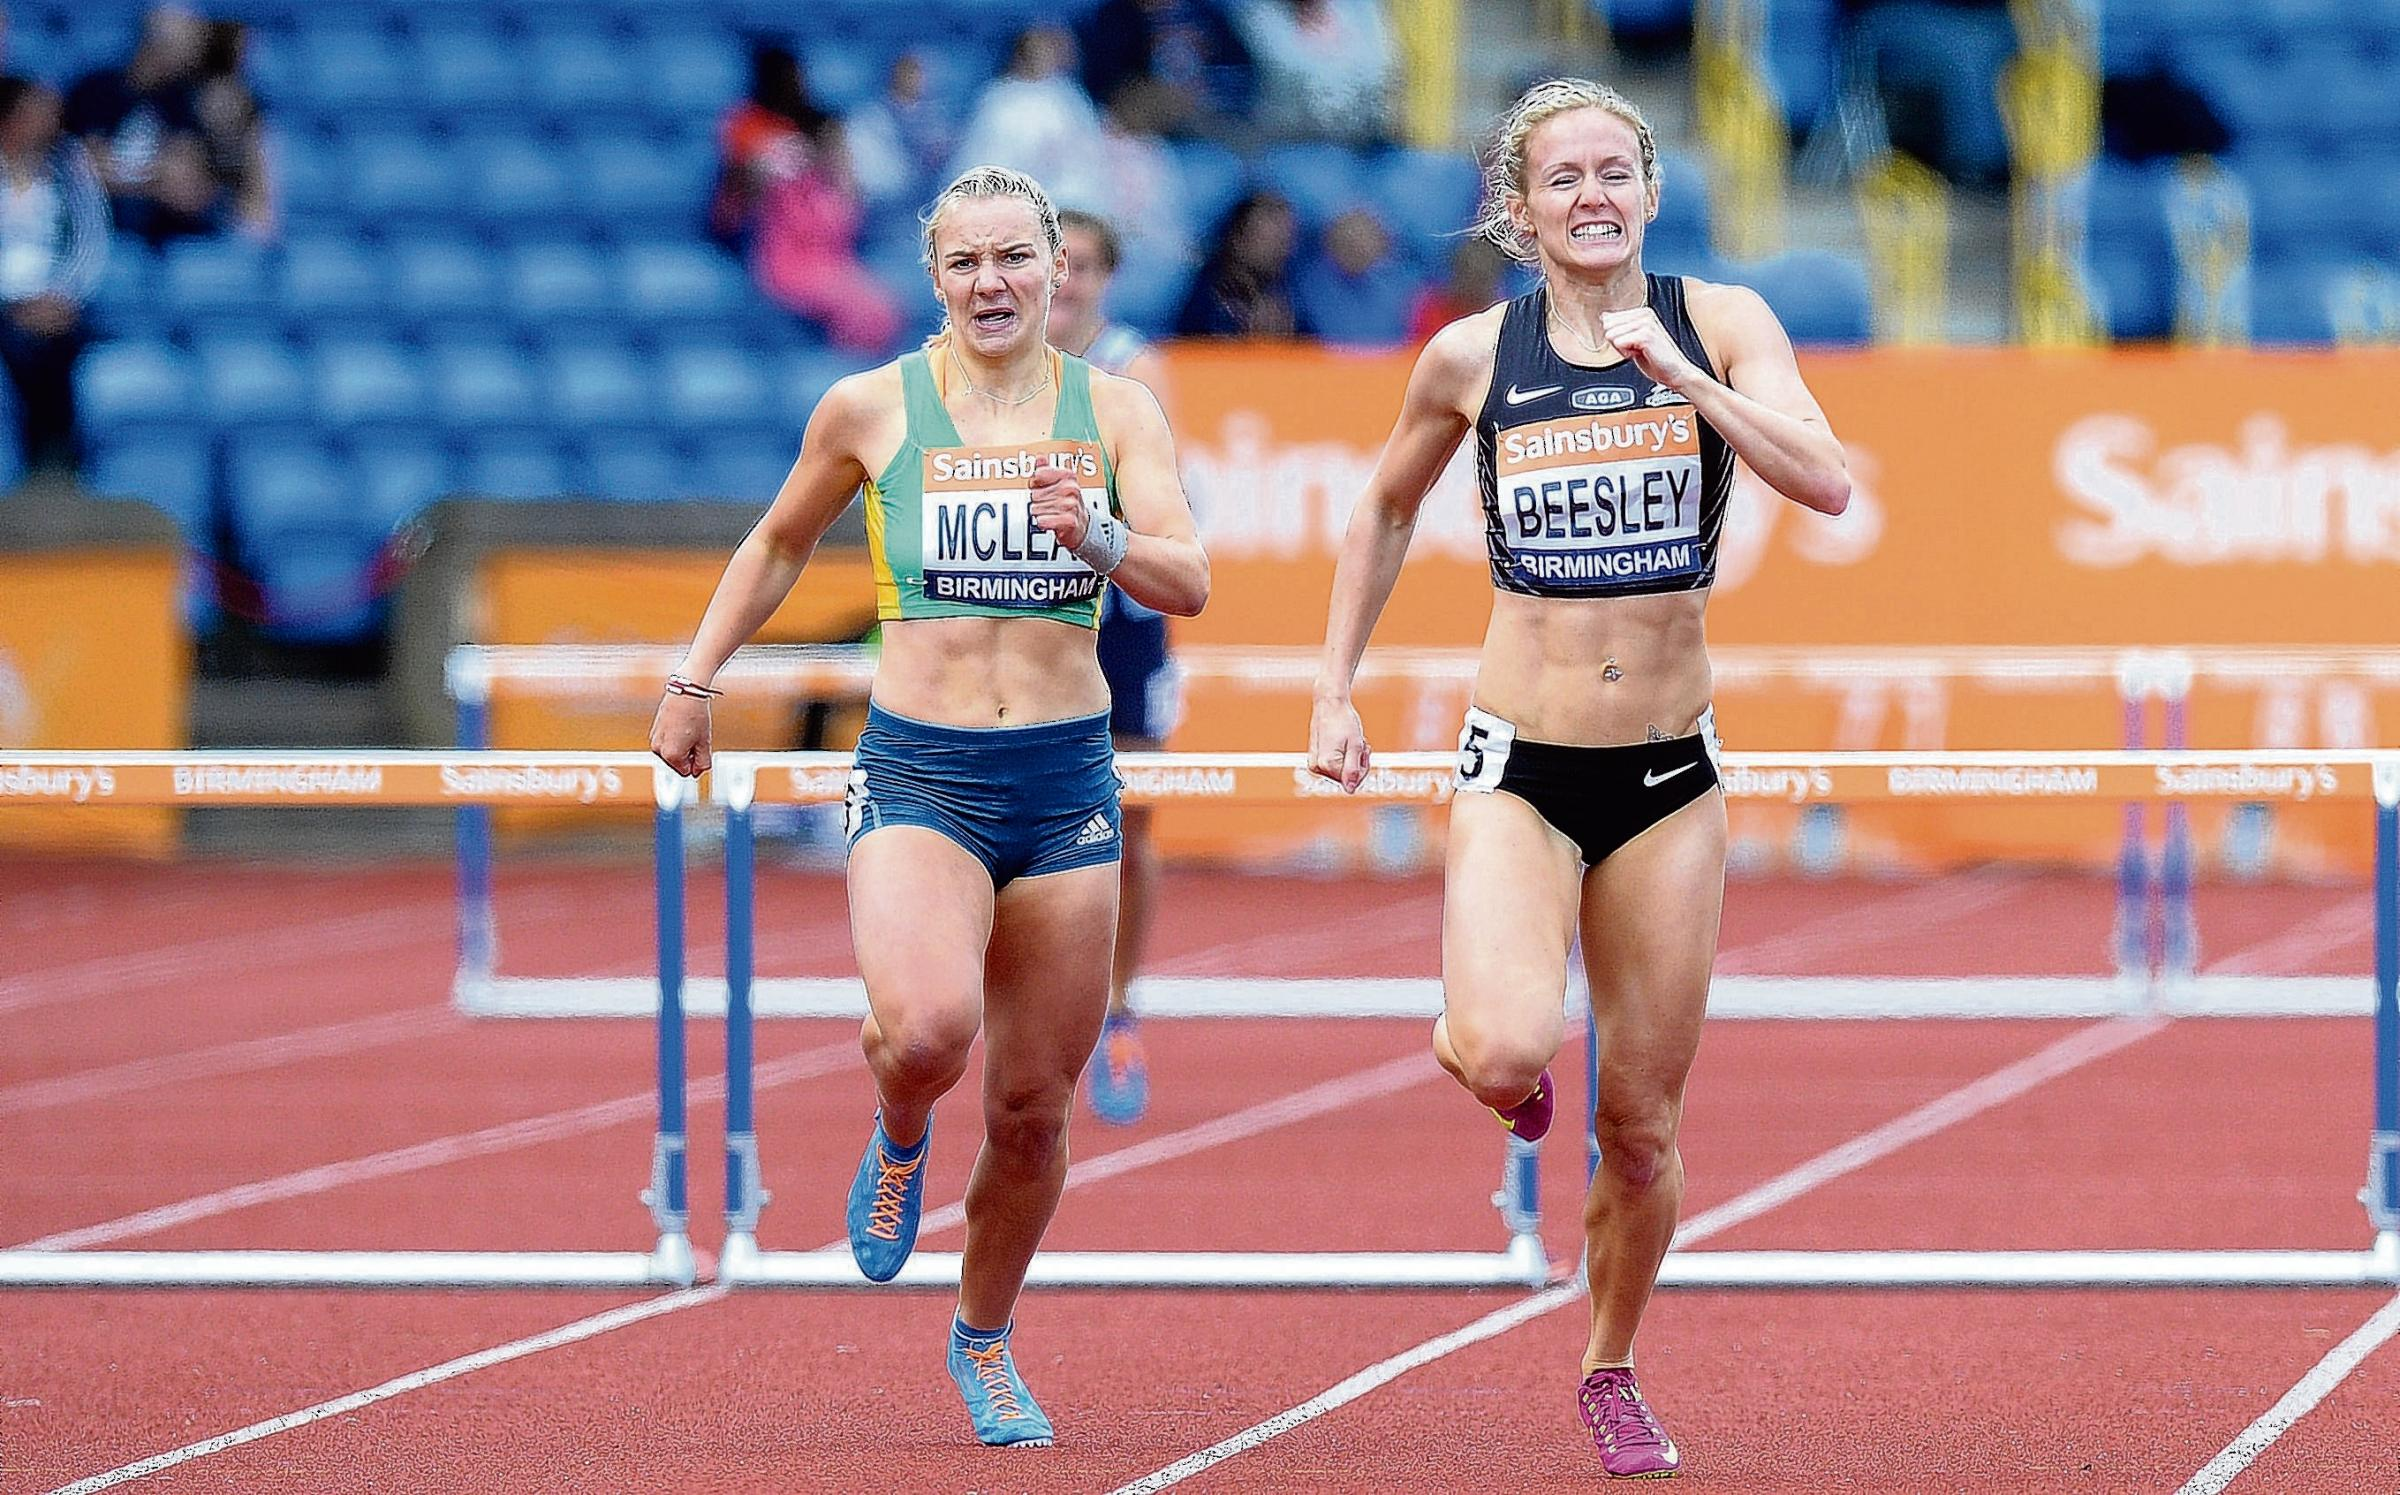 Hayley McLean battling with Meghan Beesley in the final 100m of the 400m hurdles final